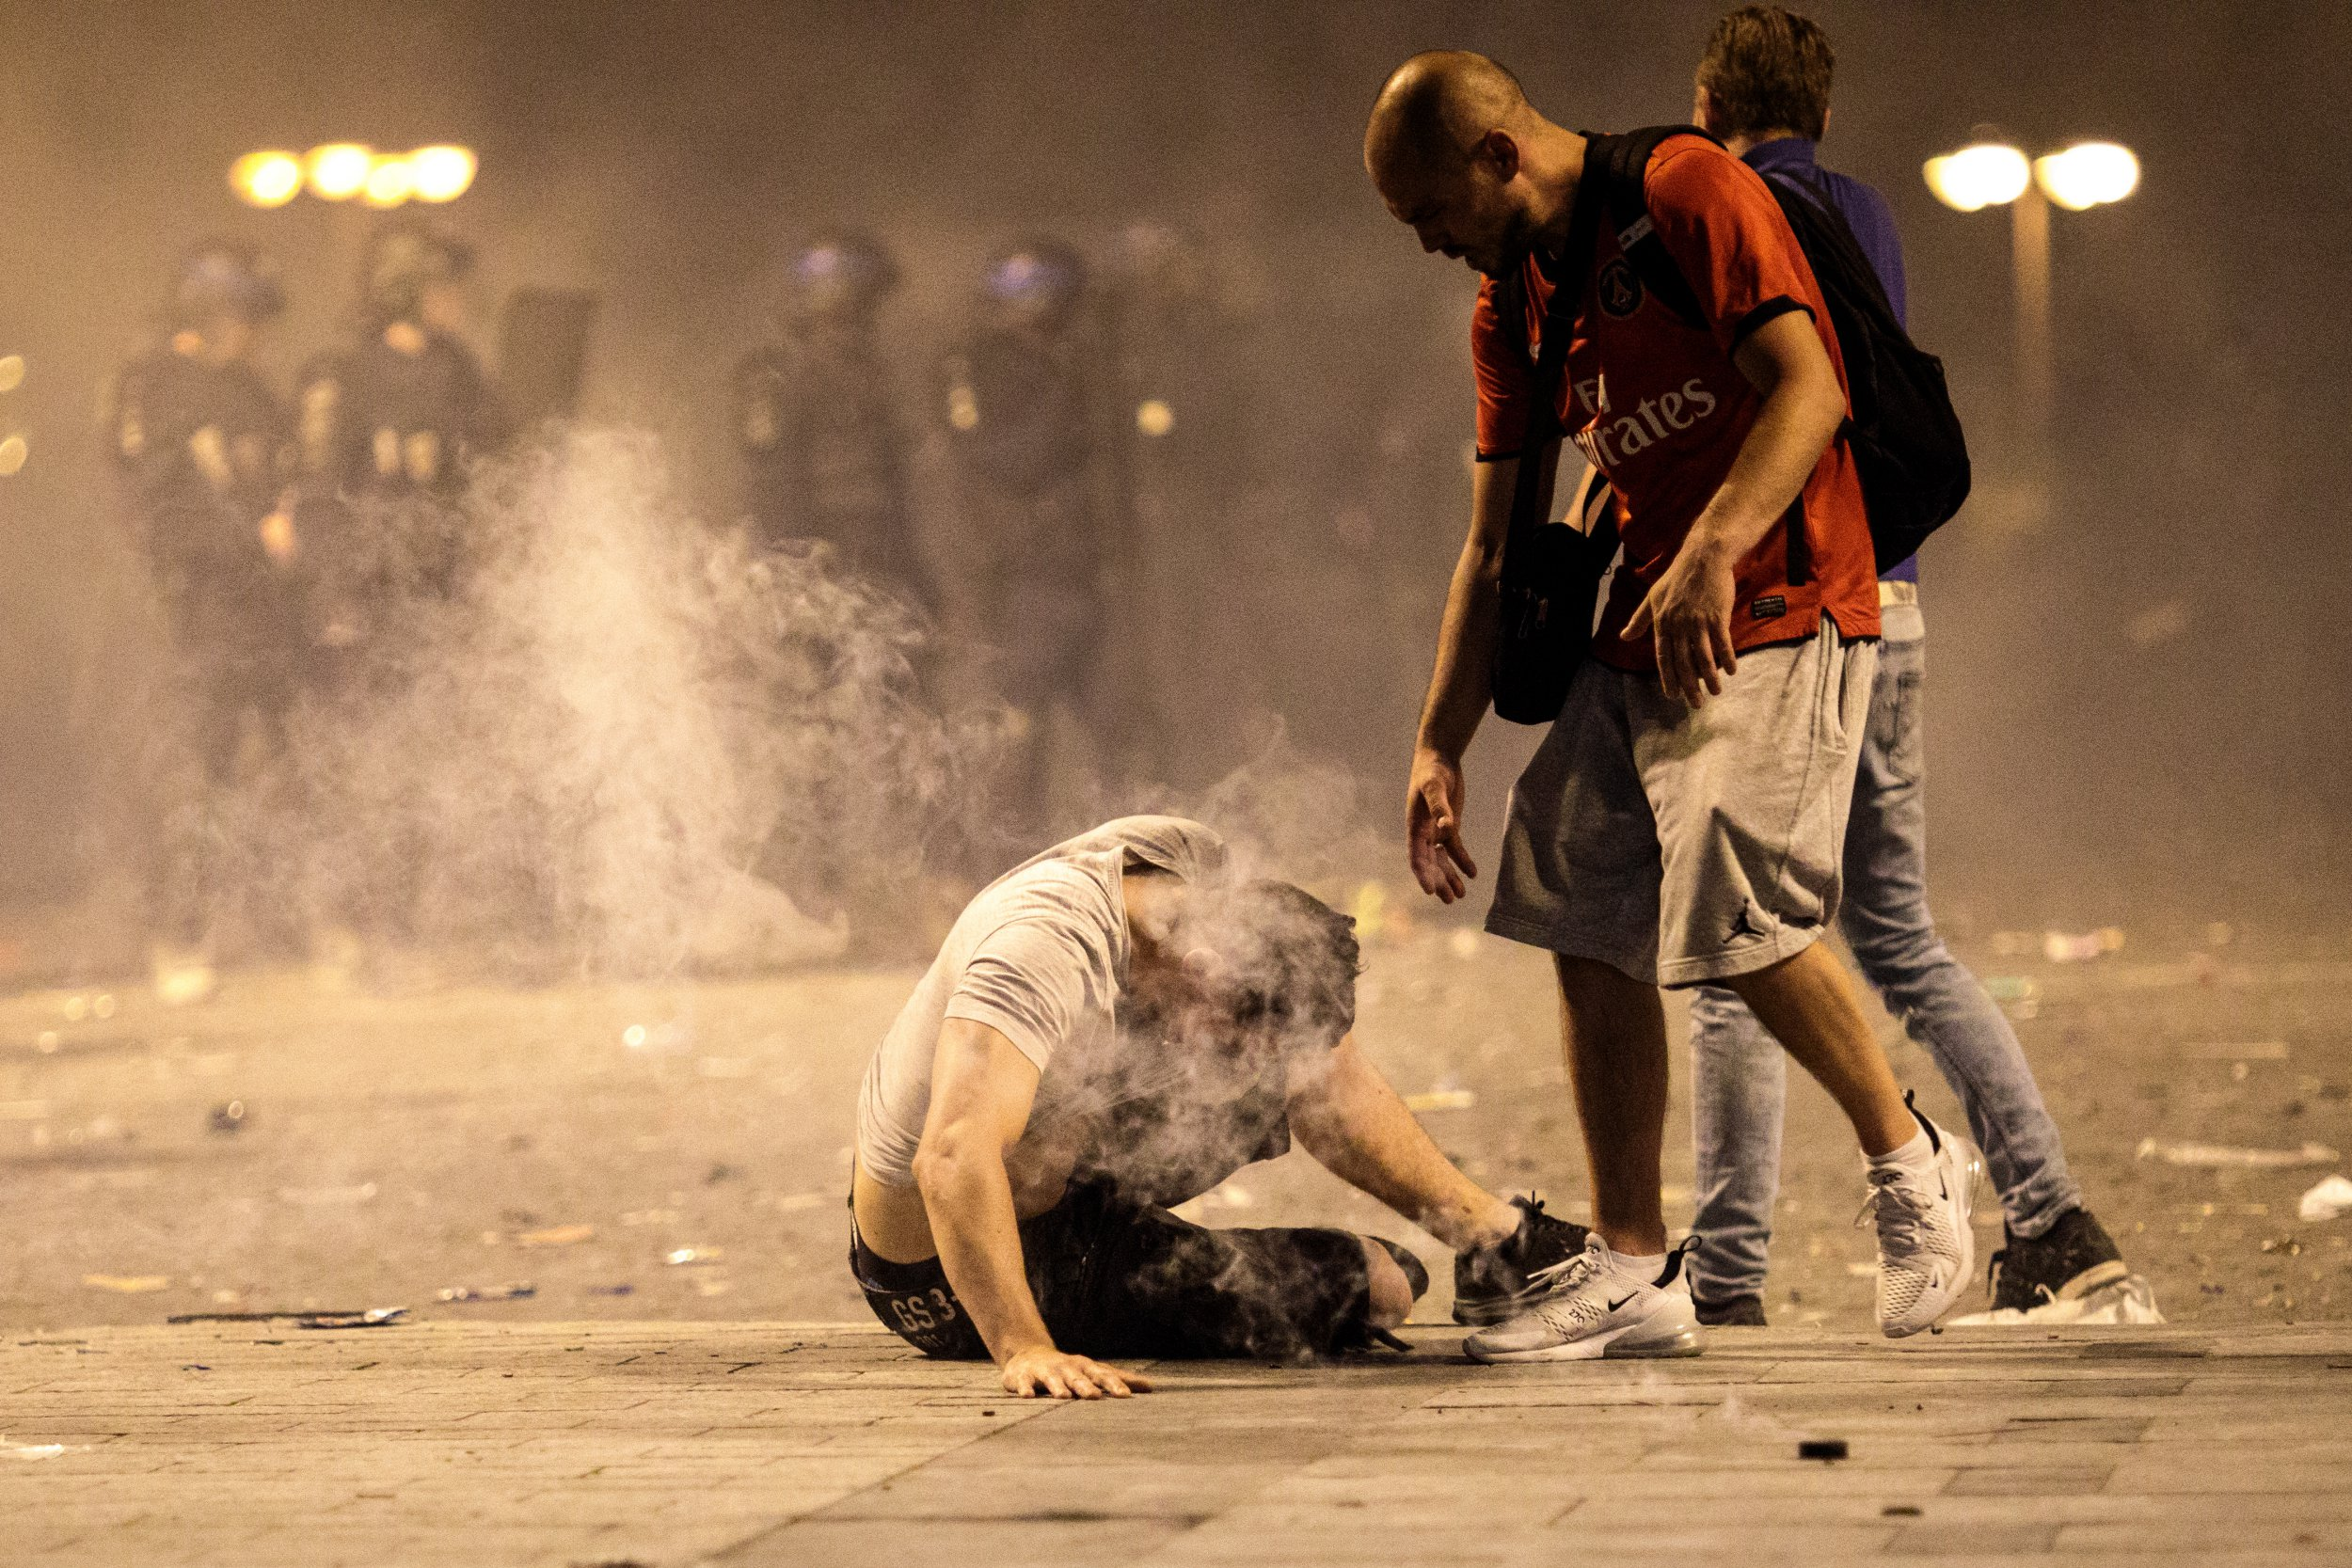 PARIS, FRANCE - JULY 15: A man falls to the floor after inhaling tear gas as French football fans clash with police following celebrations around the Arc de Triomph after France's victory against Croatia in the World Cup Final on July 15, 2018 in Paris, France. France beat Croatia 4-2 in the World Cup Final played at Moscow's Luzhniki Stadium today. (Photo by Jack Taylor/Getty Images)